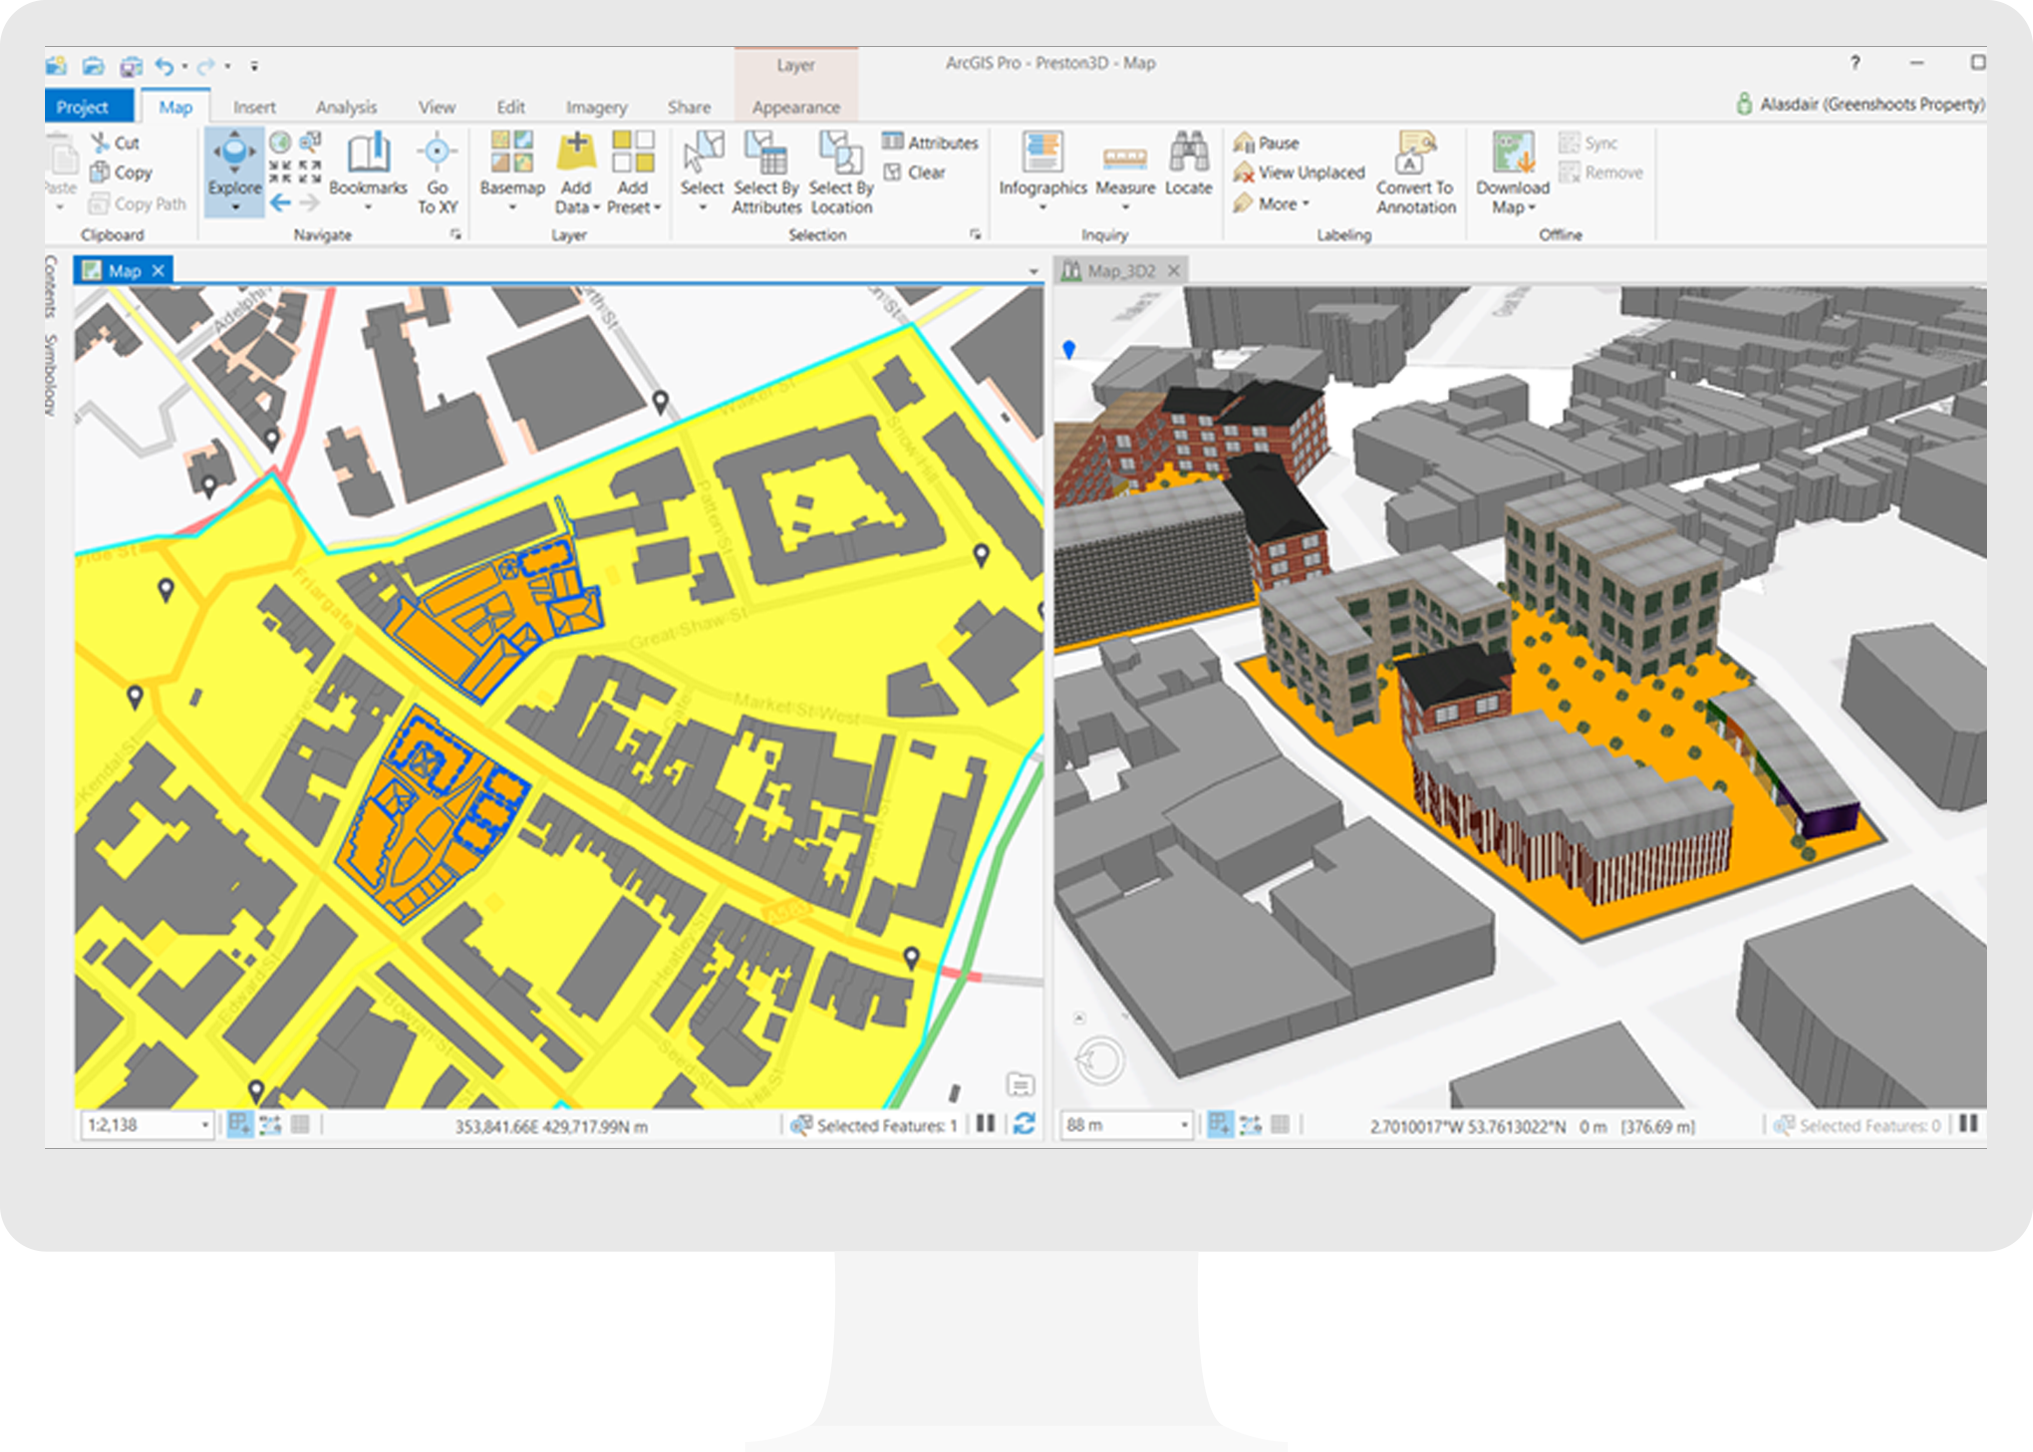 Plan, Design, Build, Maintain & Operate Smarter Cities Using